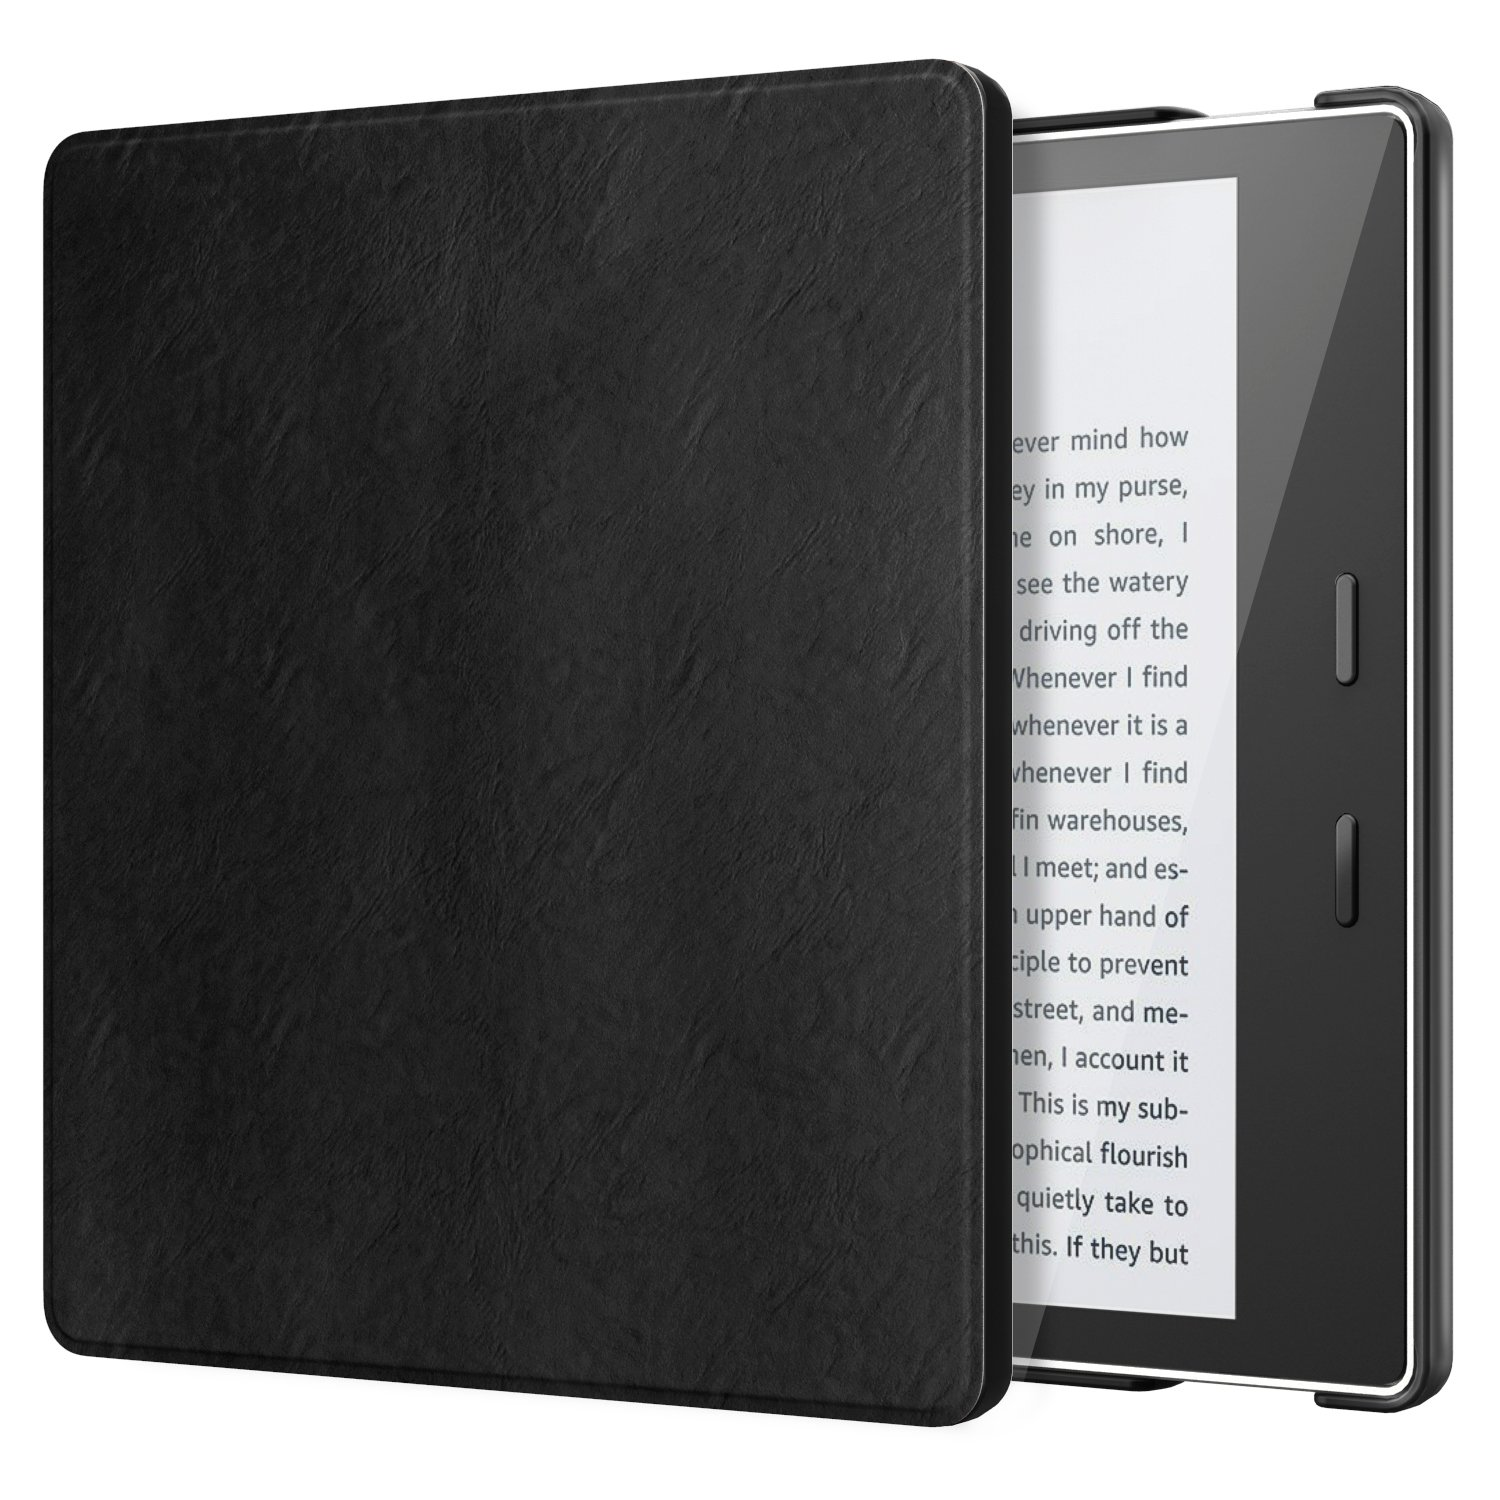 TiMOVO All-New Kindle Oasis Case (9th Generation, 2017 Release) - Lightweight Slim PU Leather Protective Case with Auto Wake & Sleep Function for Amazon Kindle Oasis E-reader 7 Inch, Black